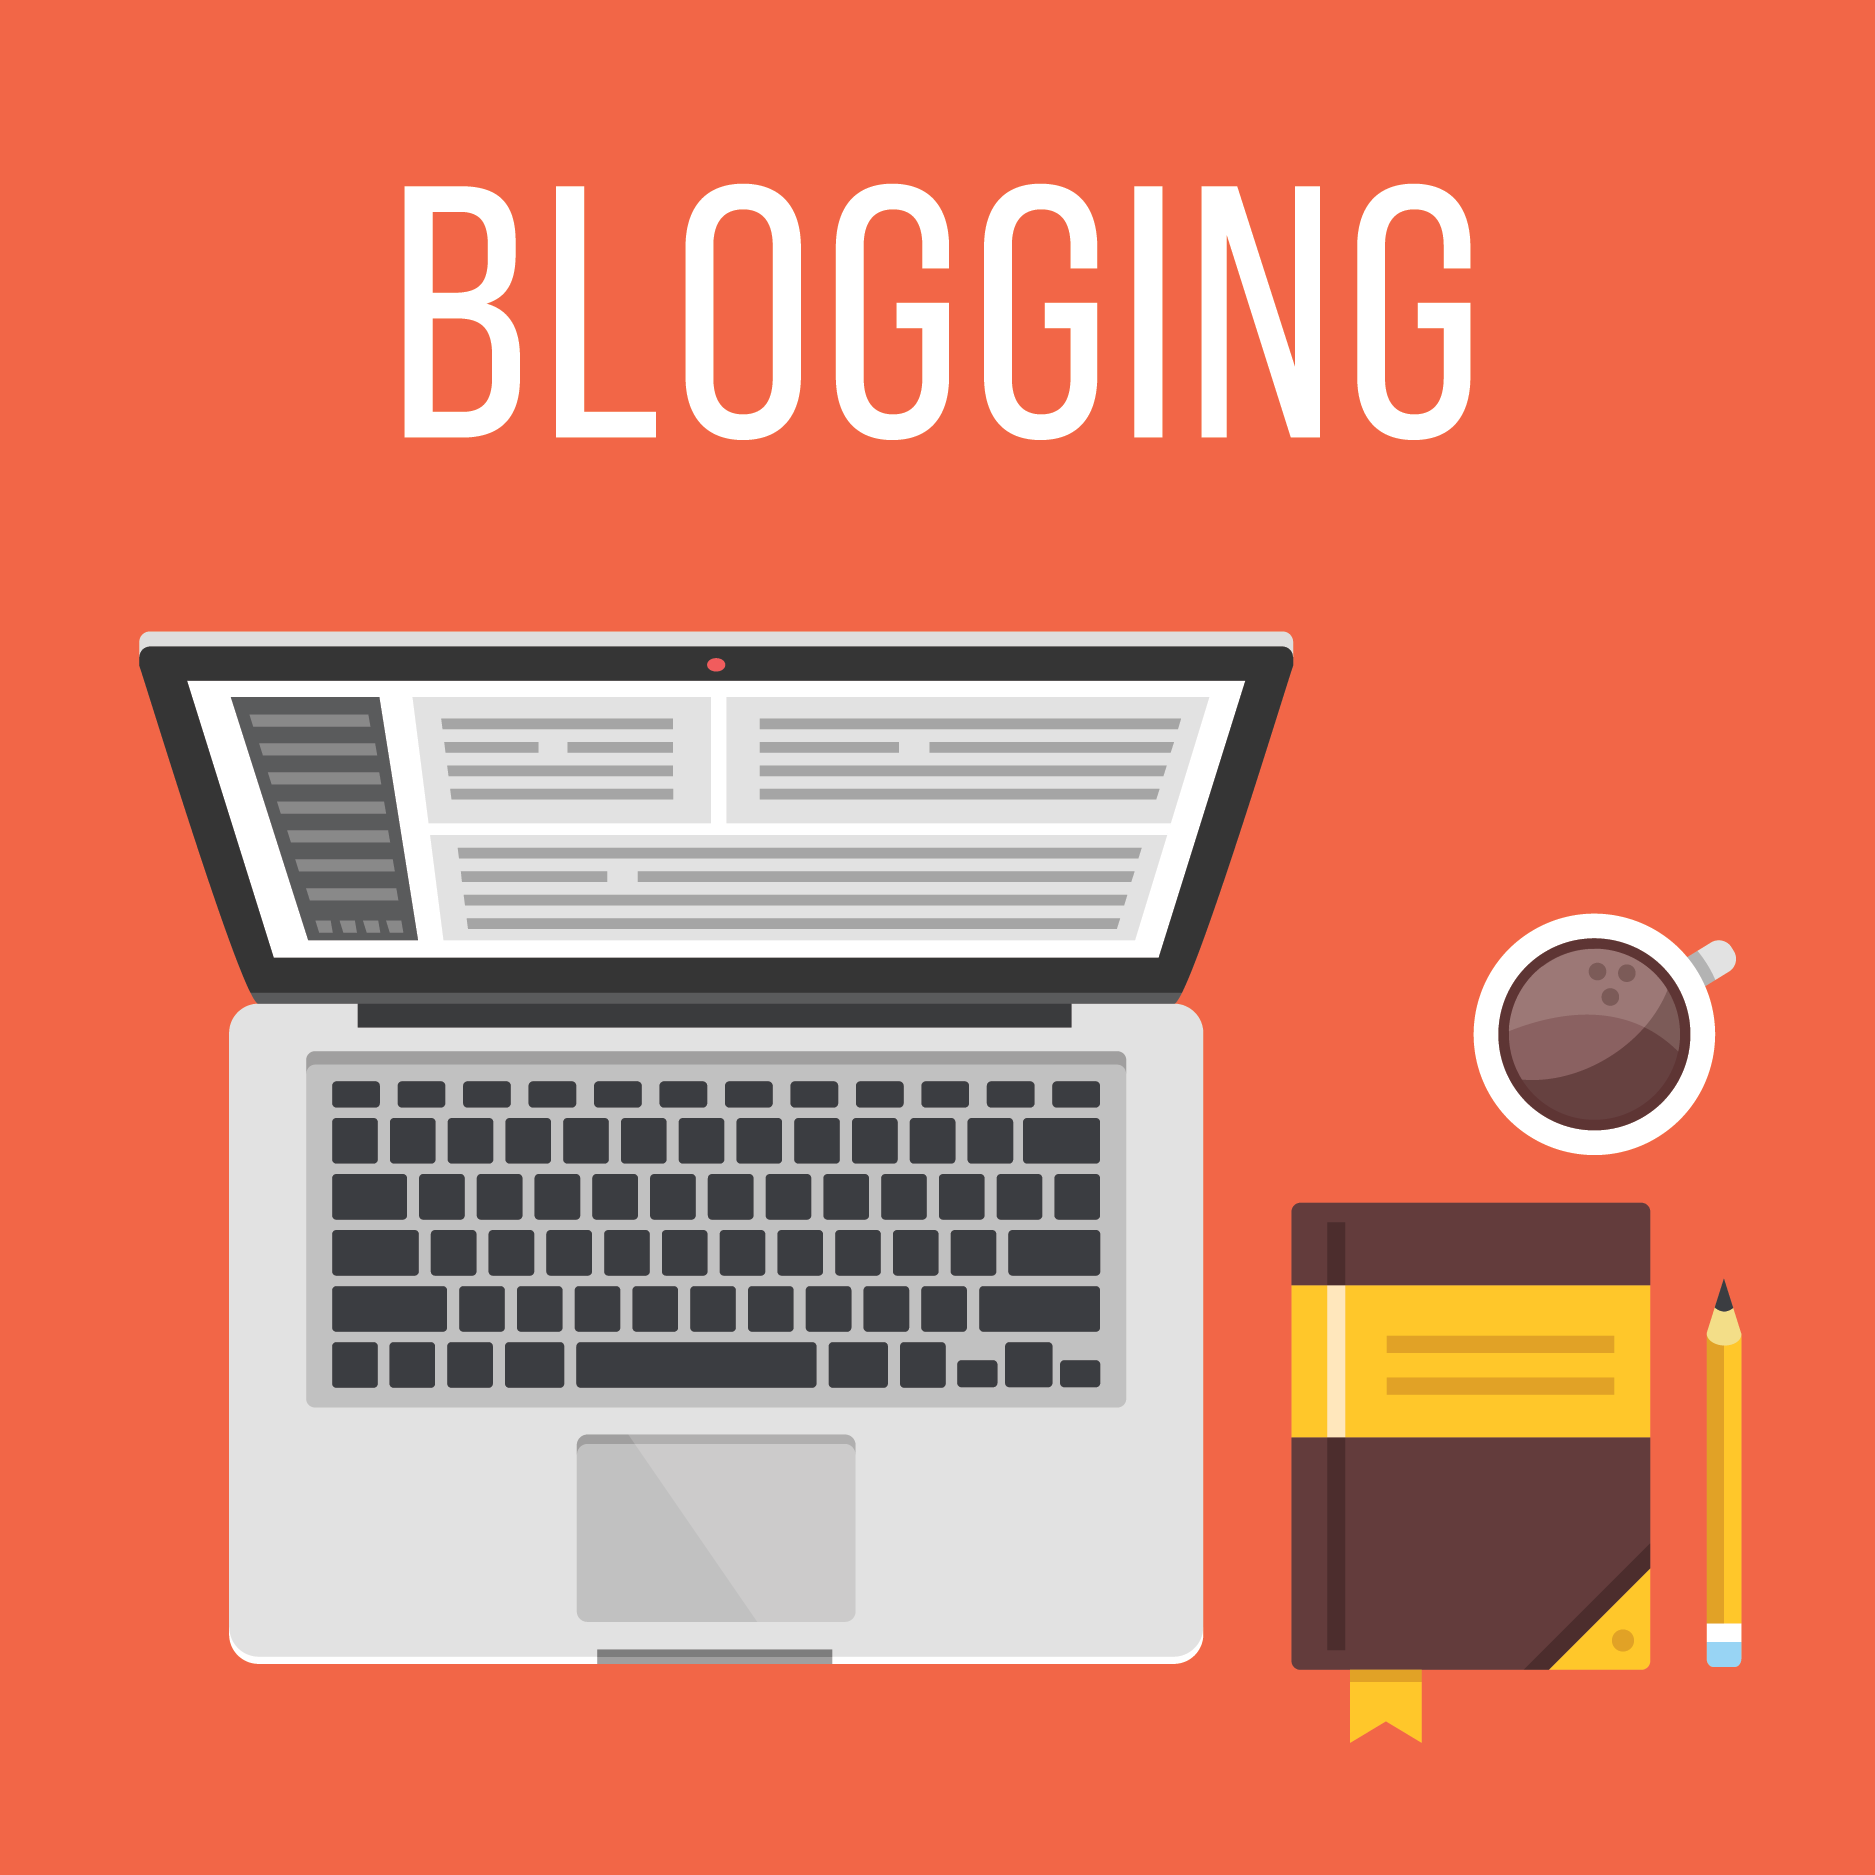 How to Control Your Name on Search Results with Blogging